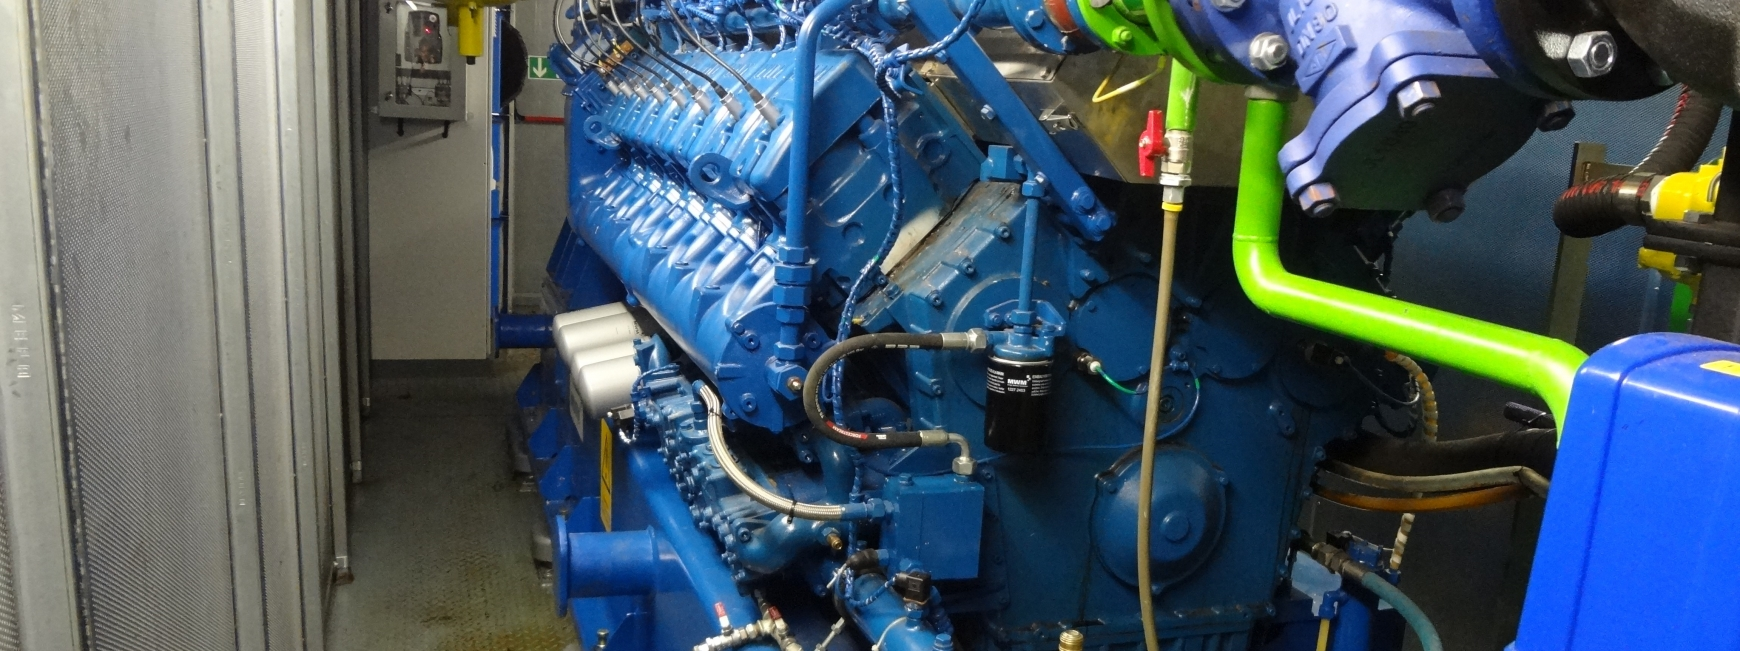 CHP Engine in a shed